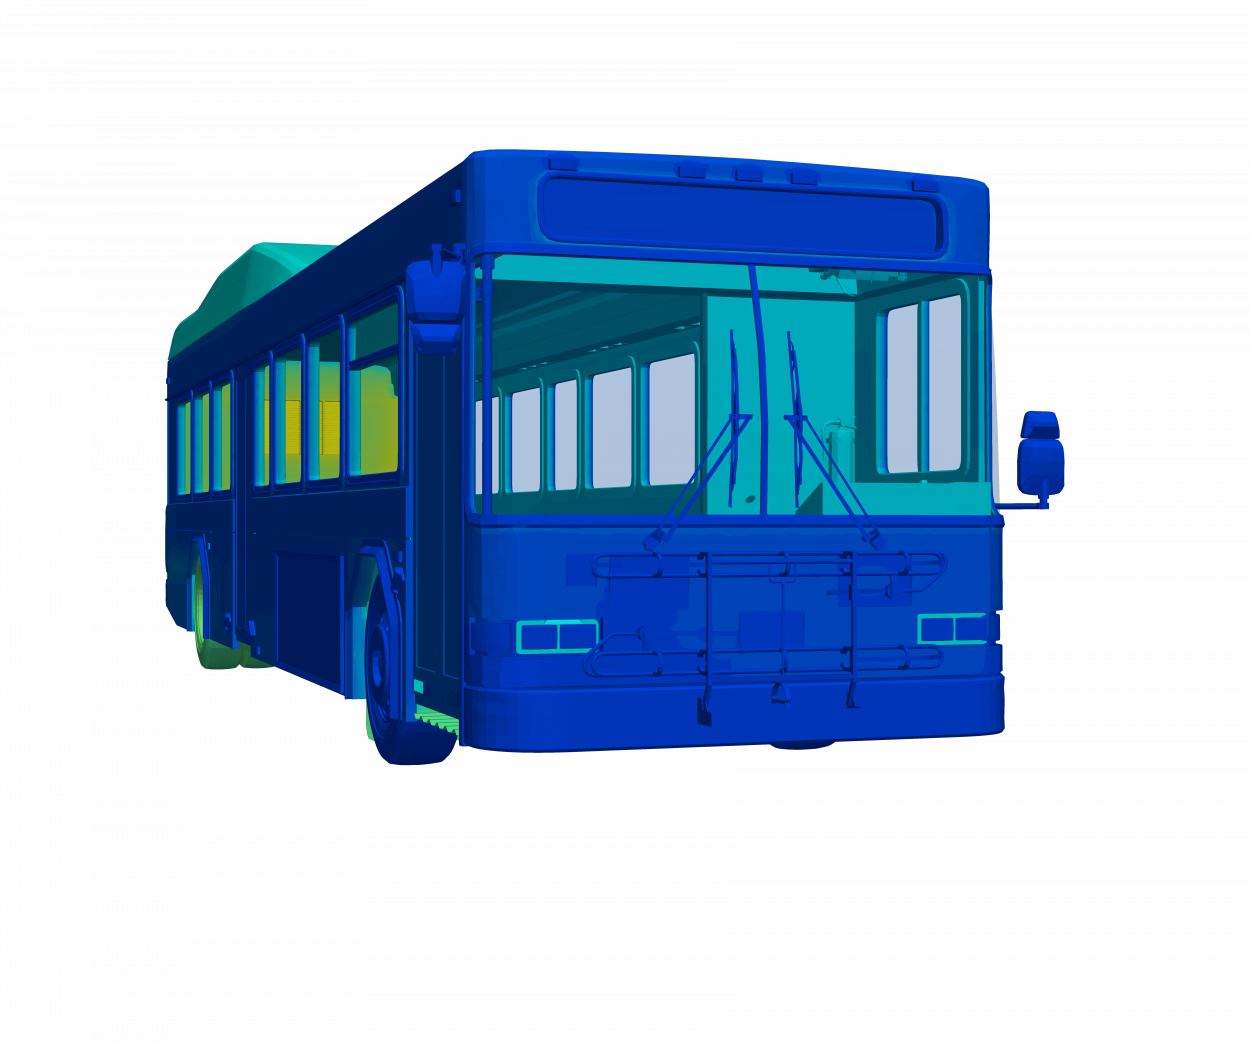 thermal simulation model city bus cool cabin from front